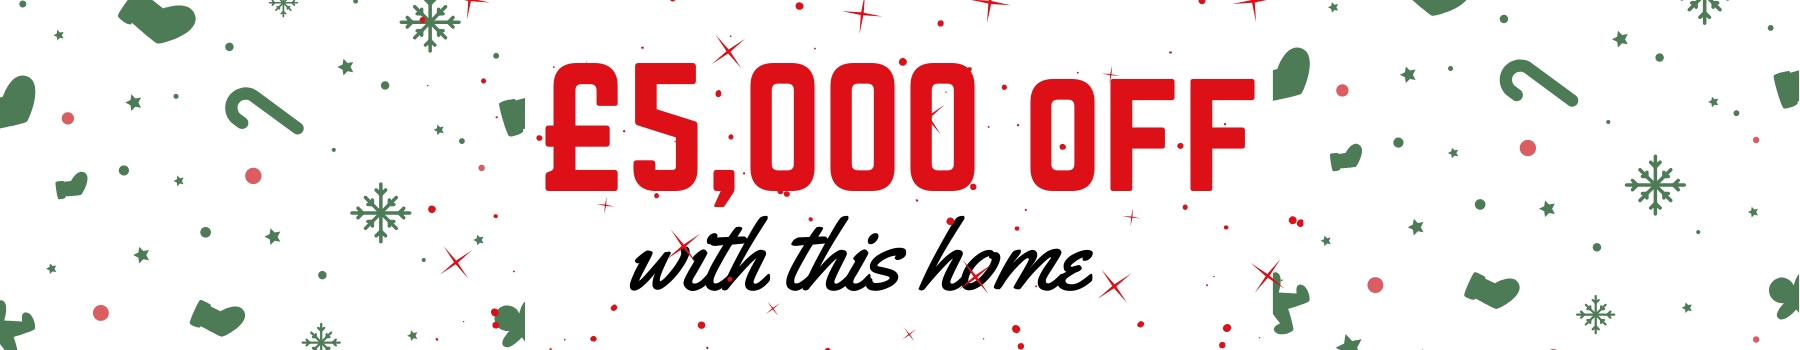 5000 off with this home property banner v2